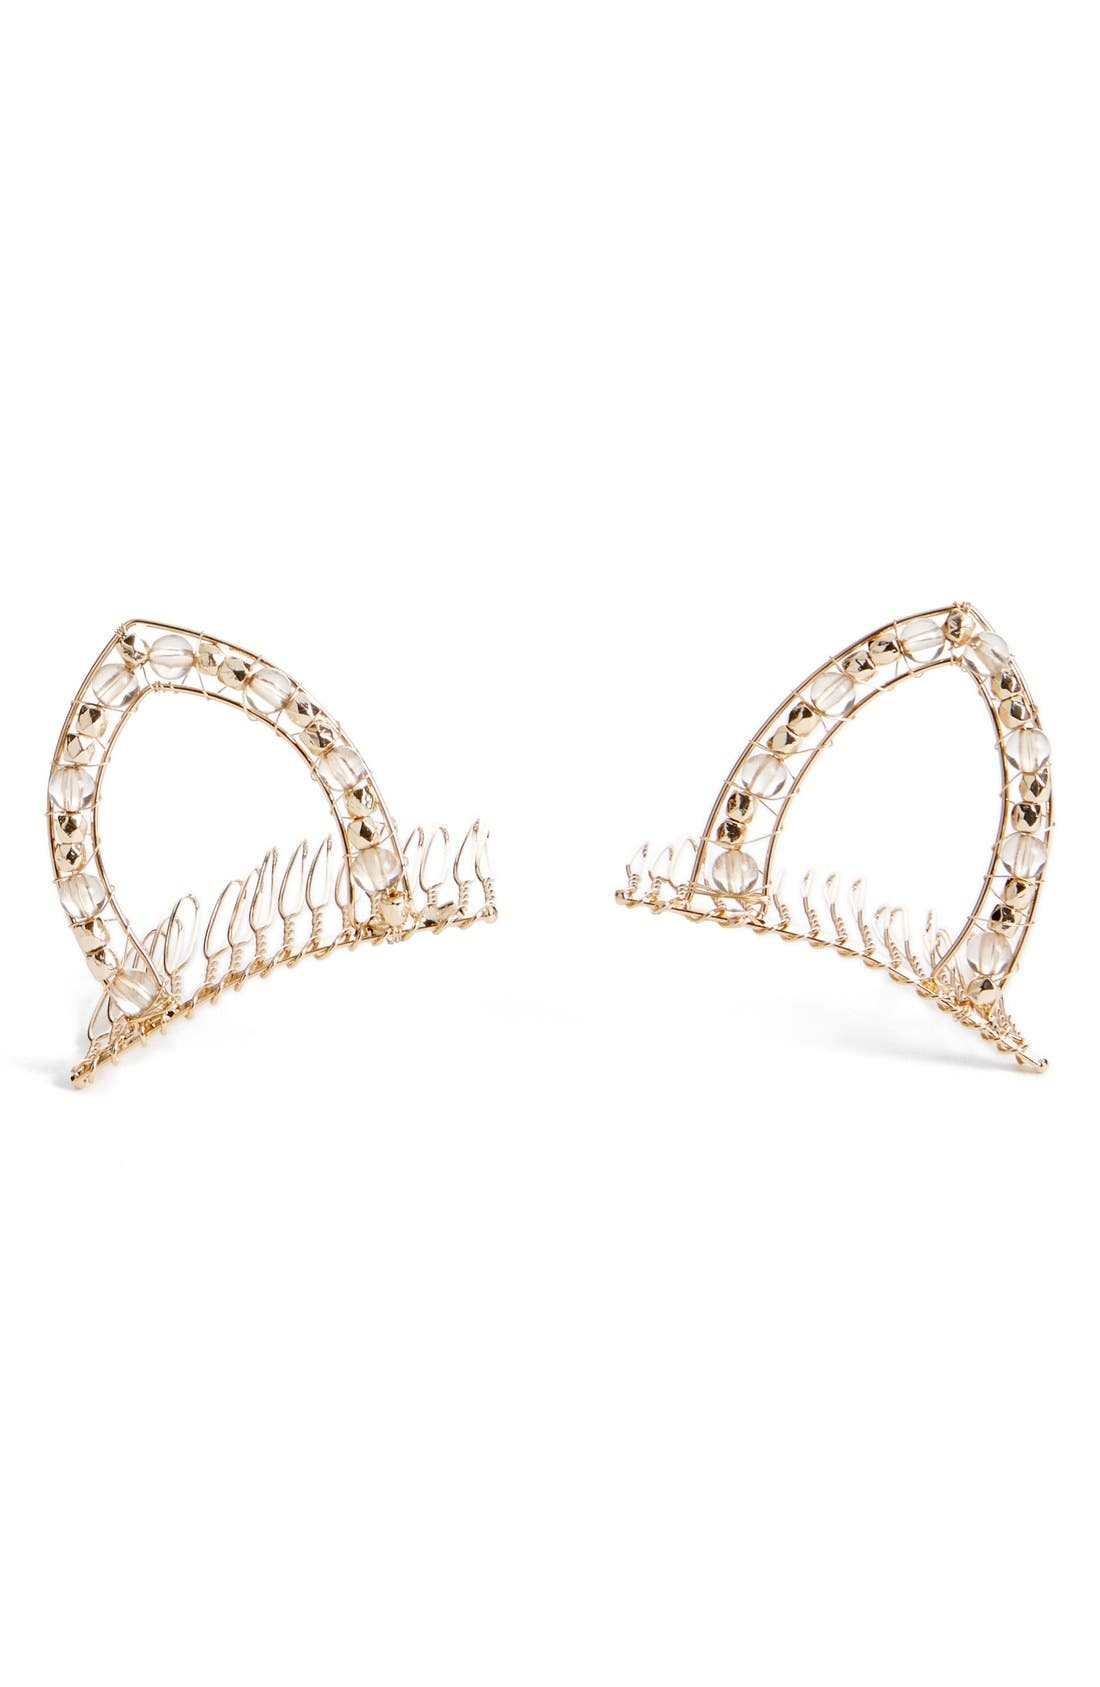 Alternate Image 1 Selected - Berry Cat Ear Combs (Set of 2)